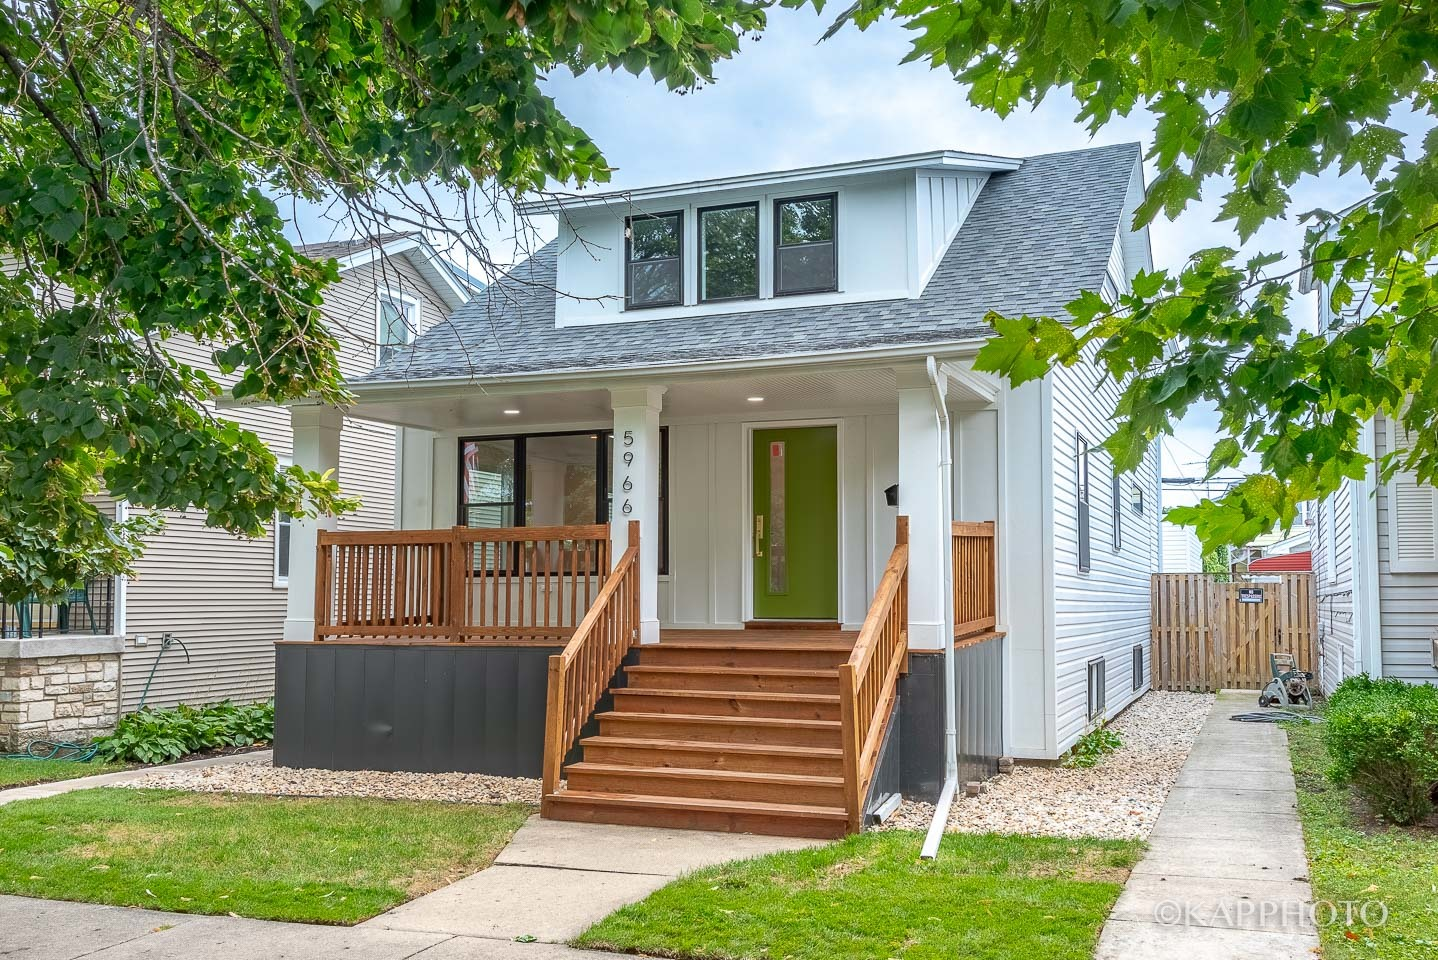 Hold your hats, folks, your search stops here! Welcome to 5966 N Manton Ave, a luxurious, sophistica